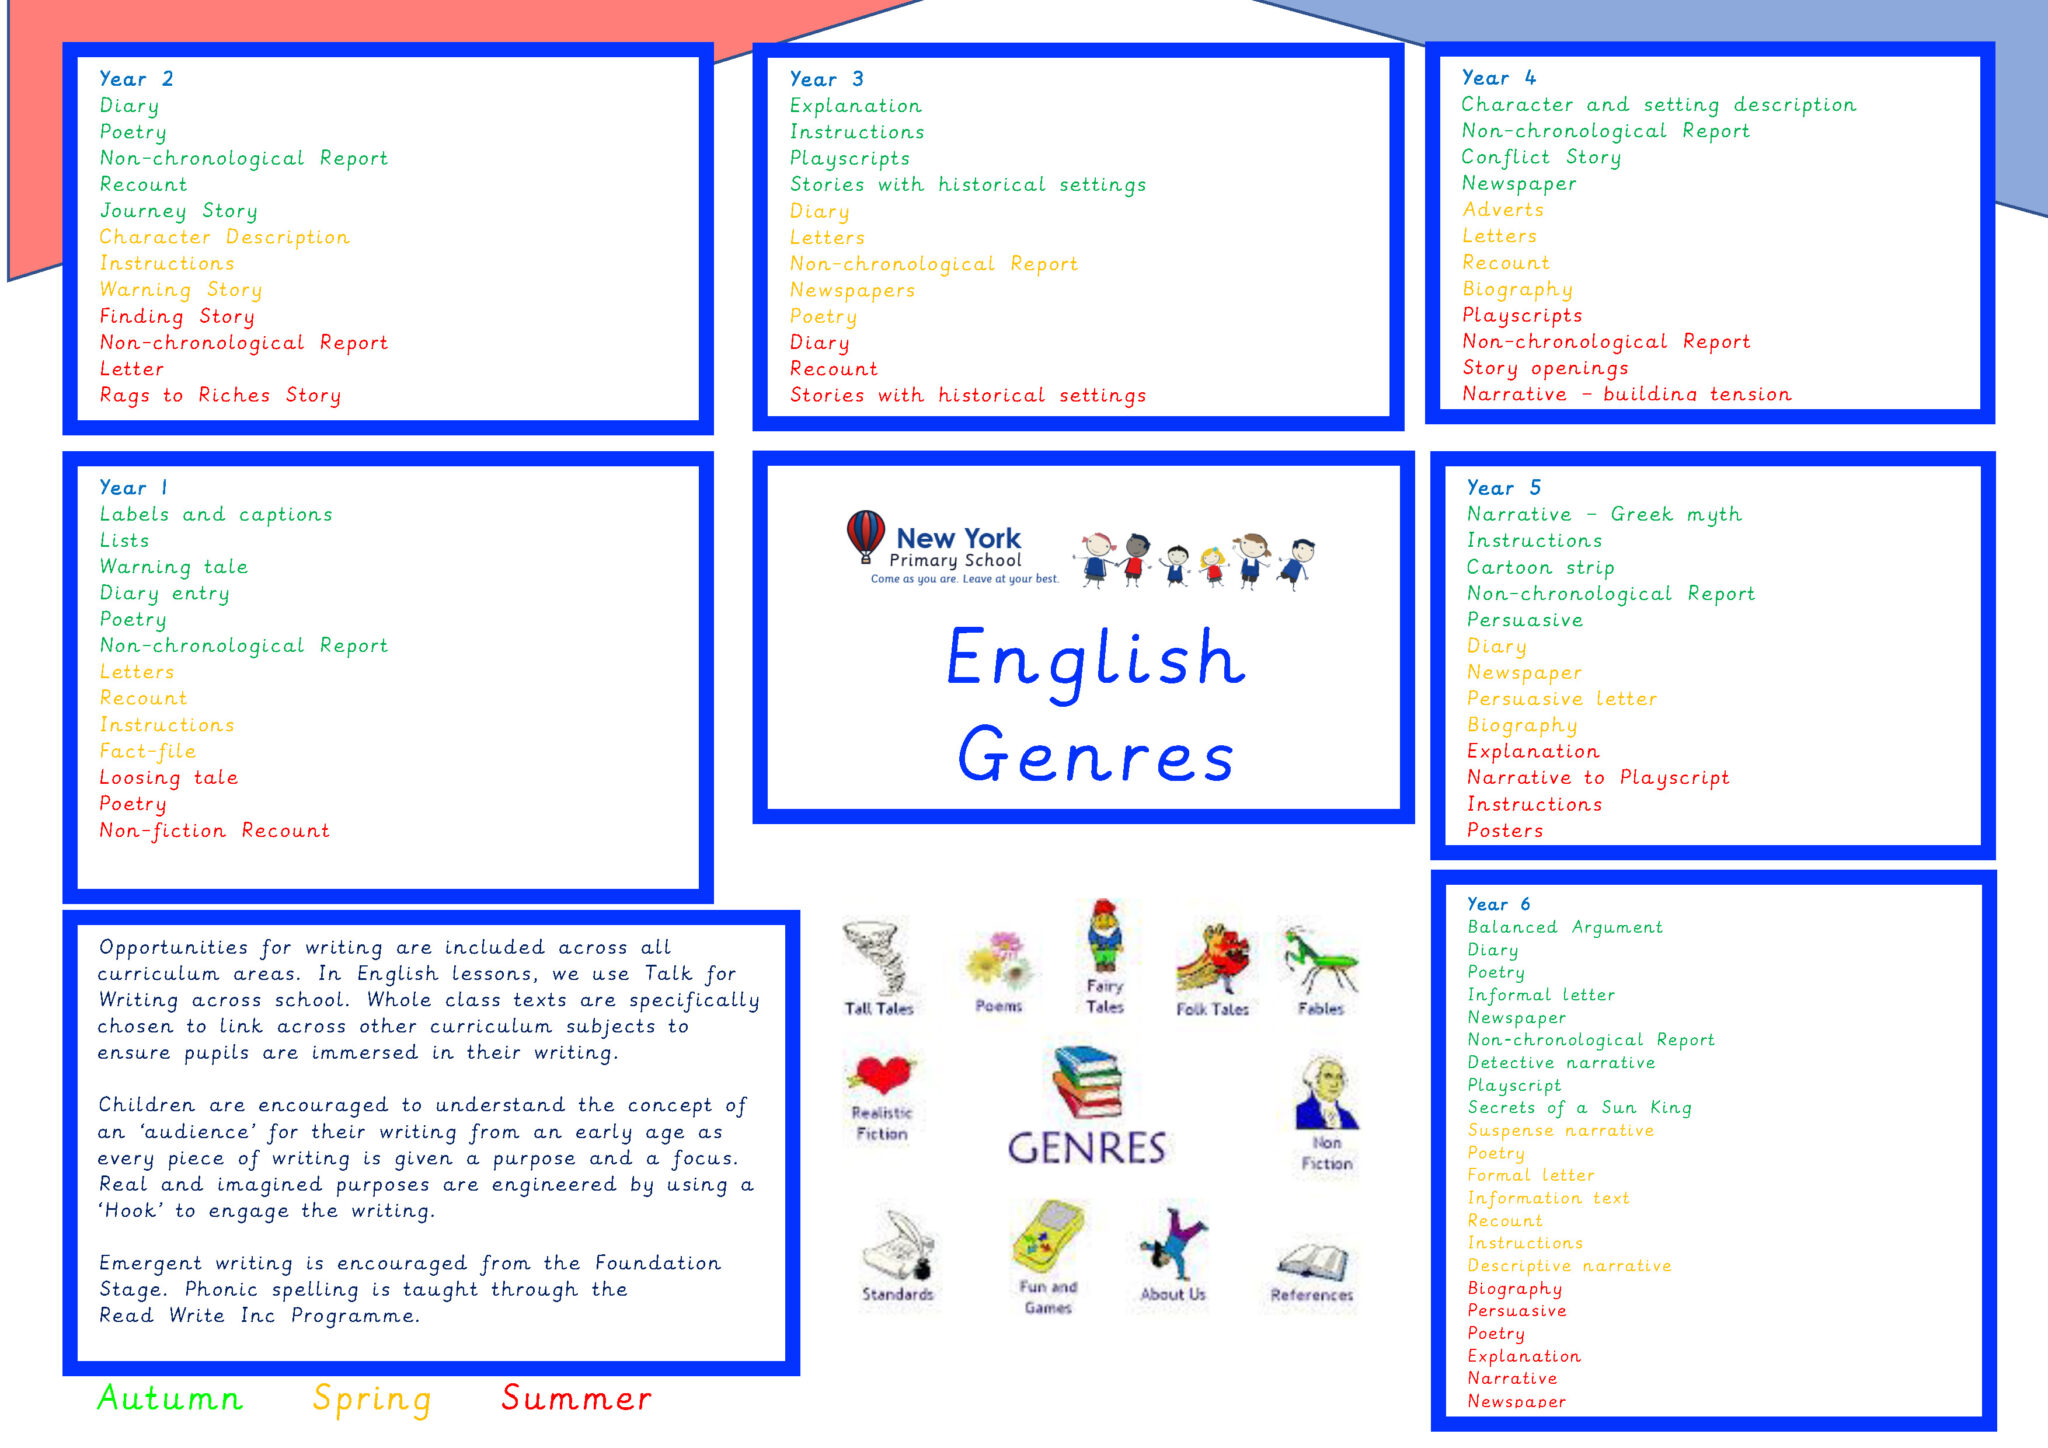 English Genres overview